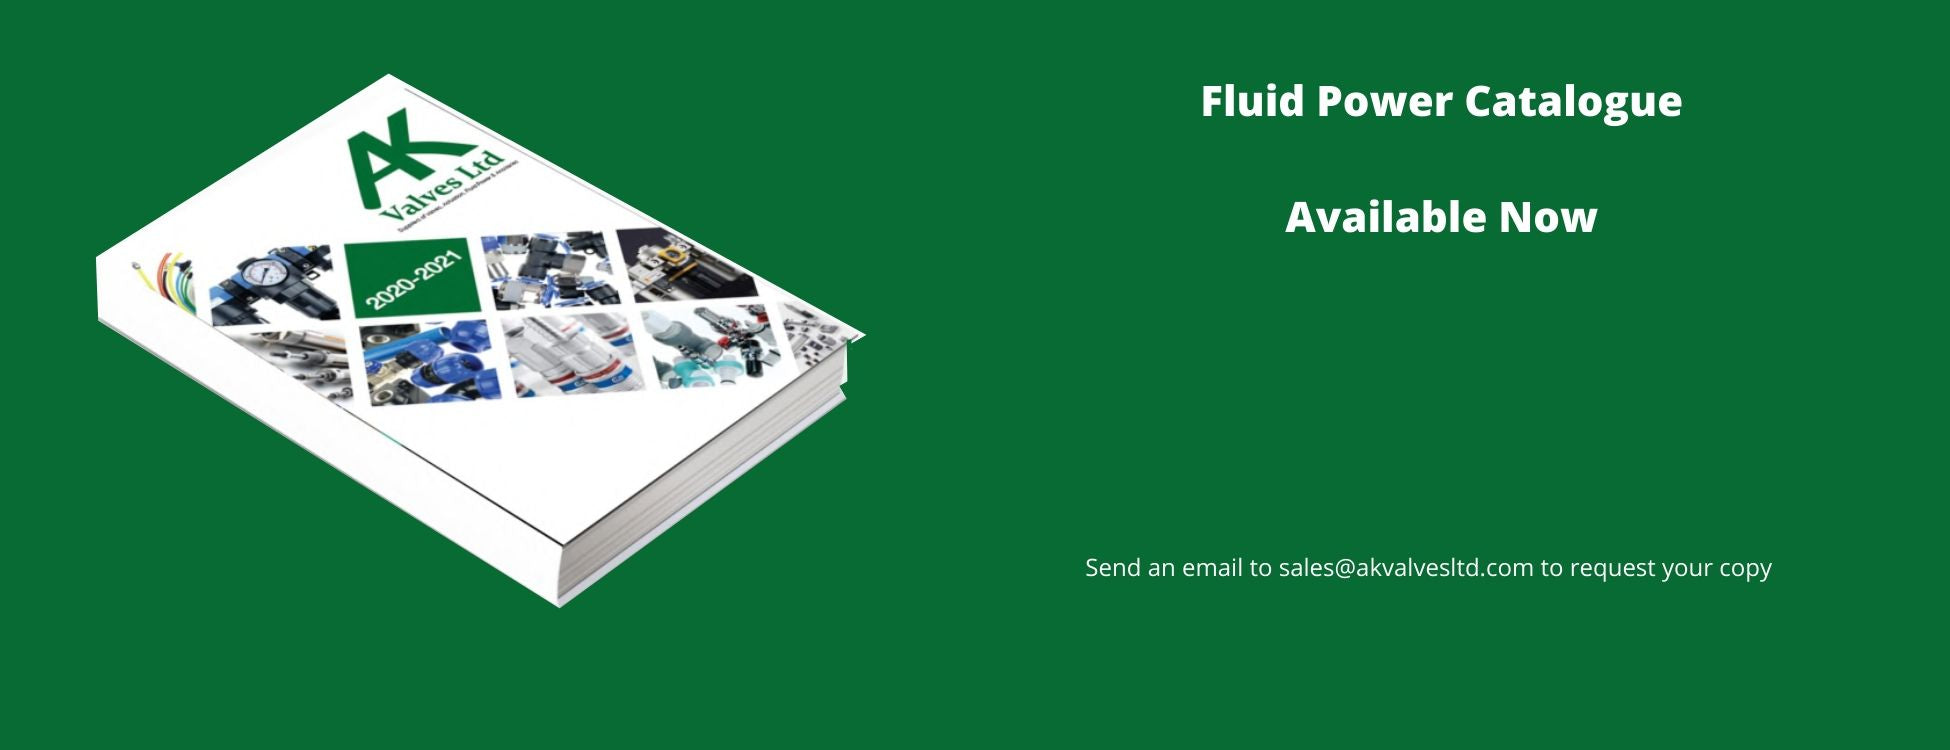 Advert for AK Valves Limited's Fluid Power Catalogue